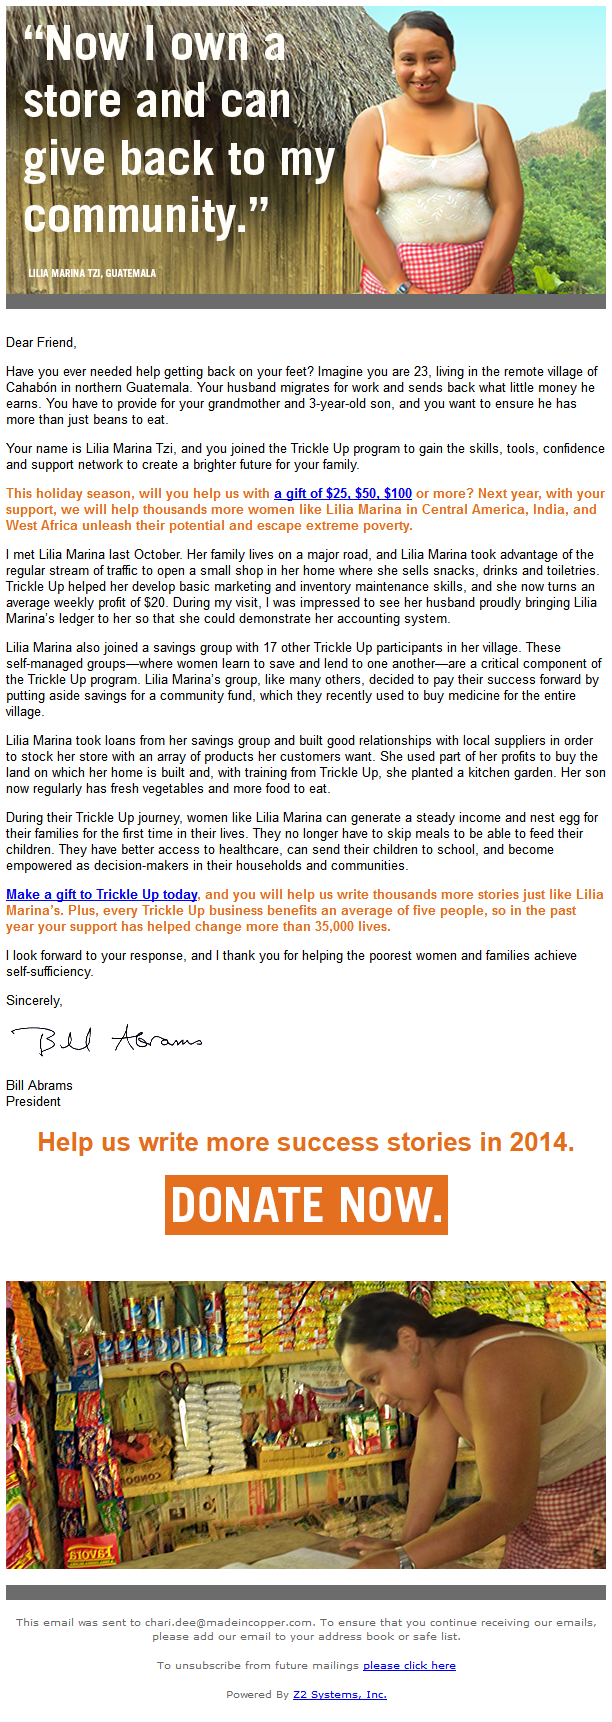 Charity Emails -Trickle Up - Help us write more success stories in 2014